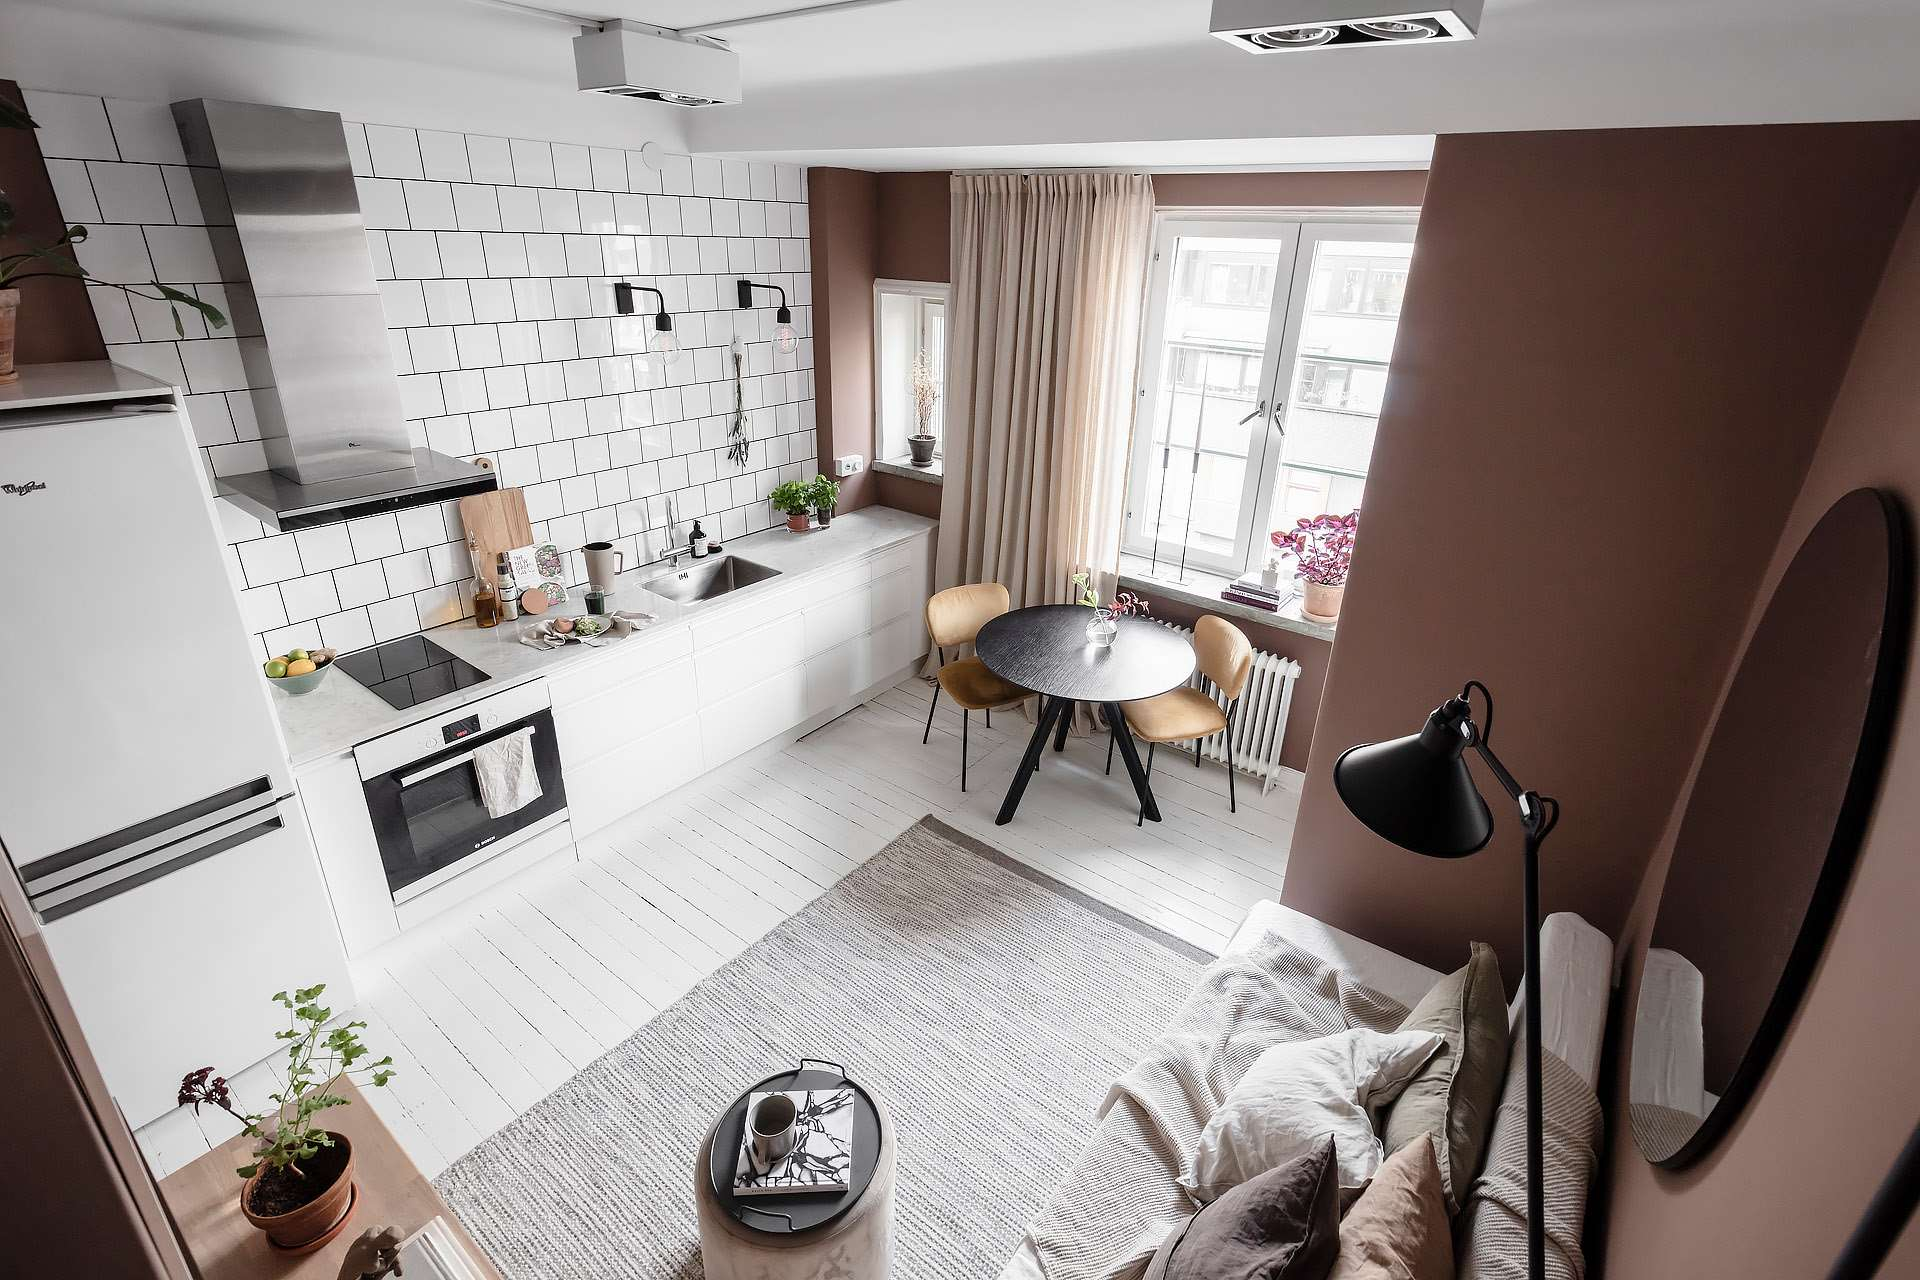 A Tiny Pink Studio Apartment With Loft Bed And Walk In Closet The Nordroom